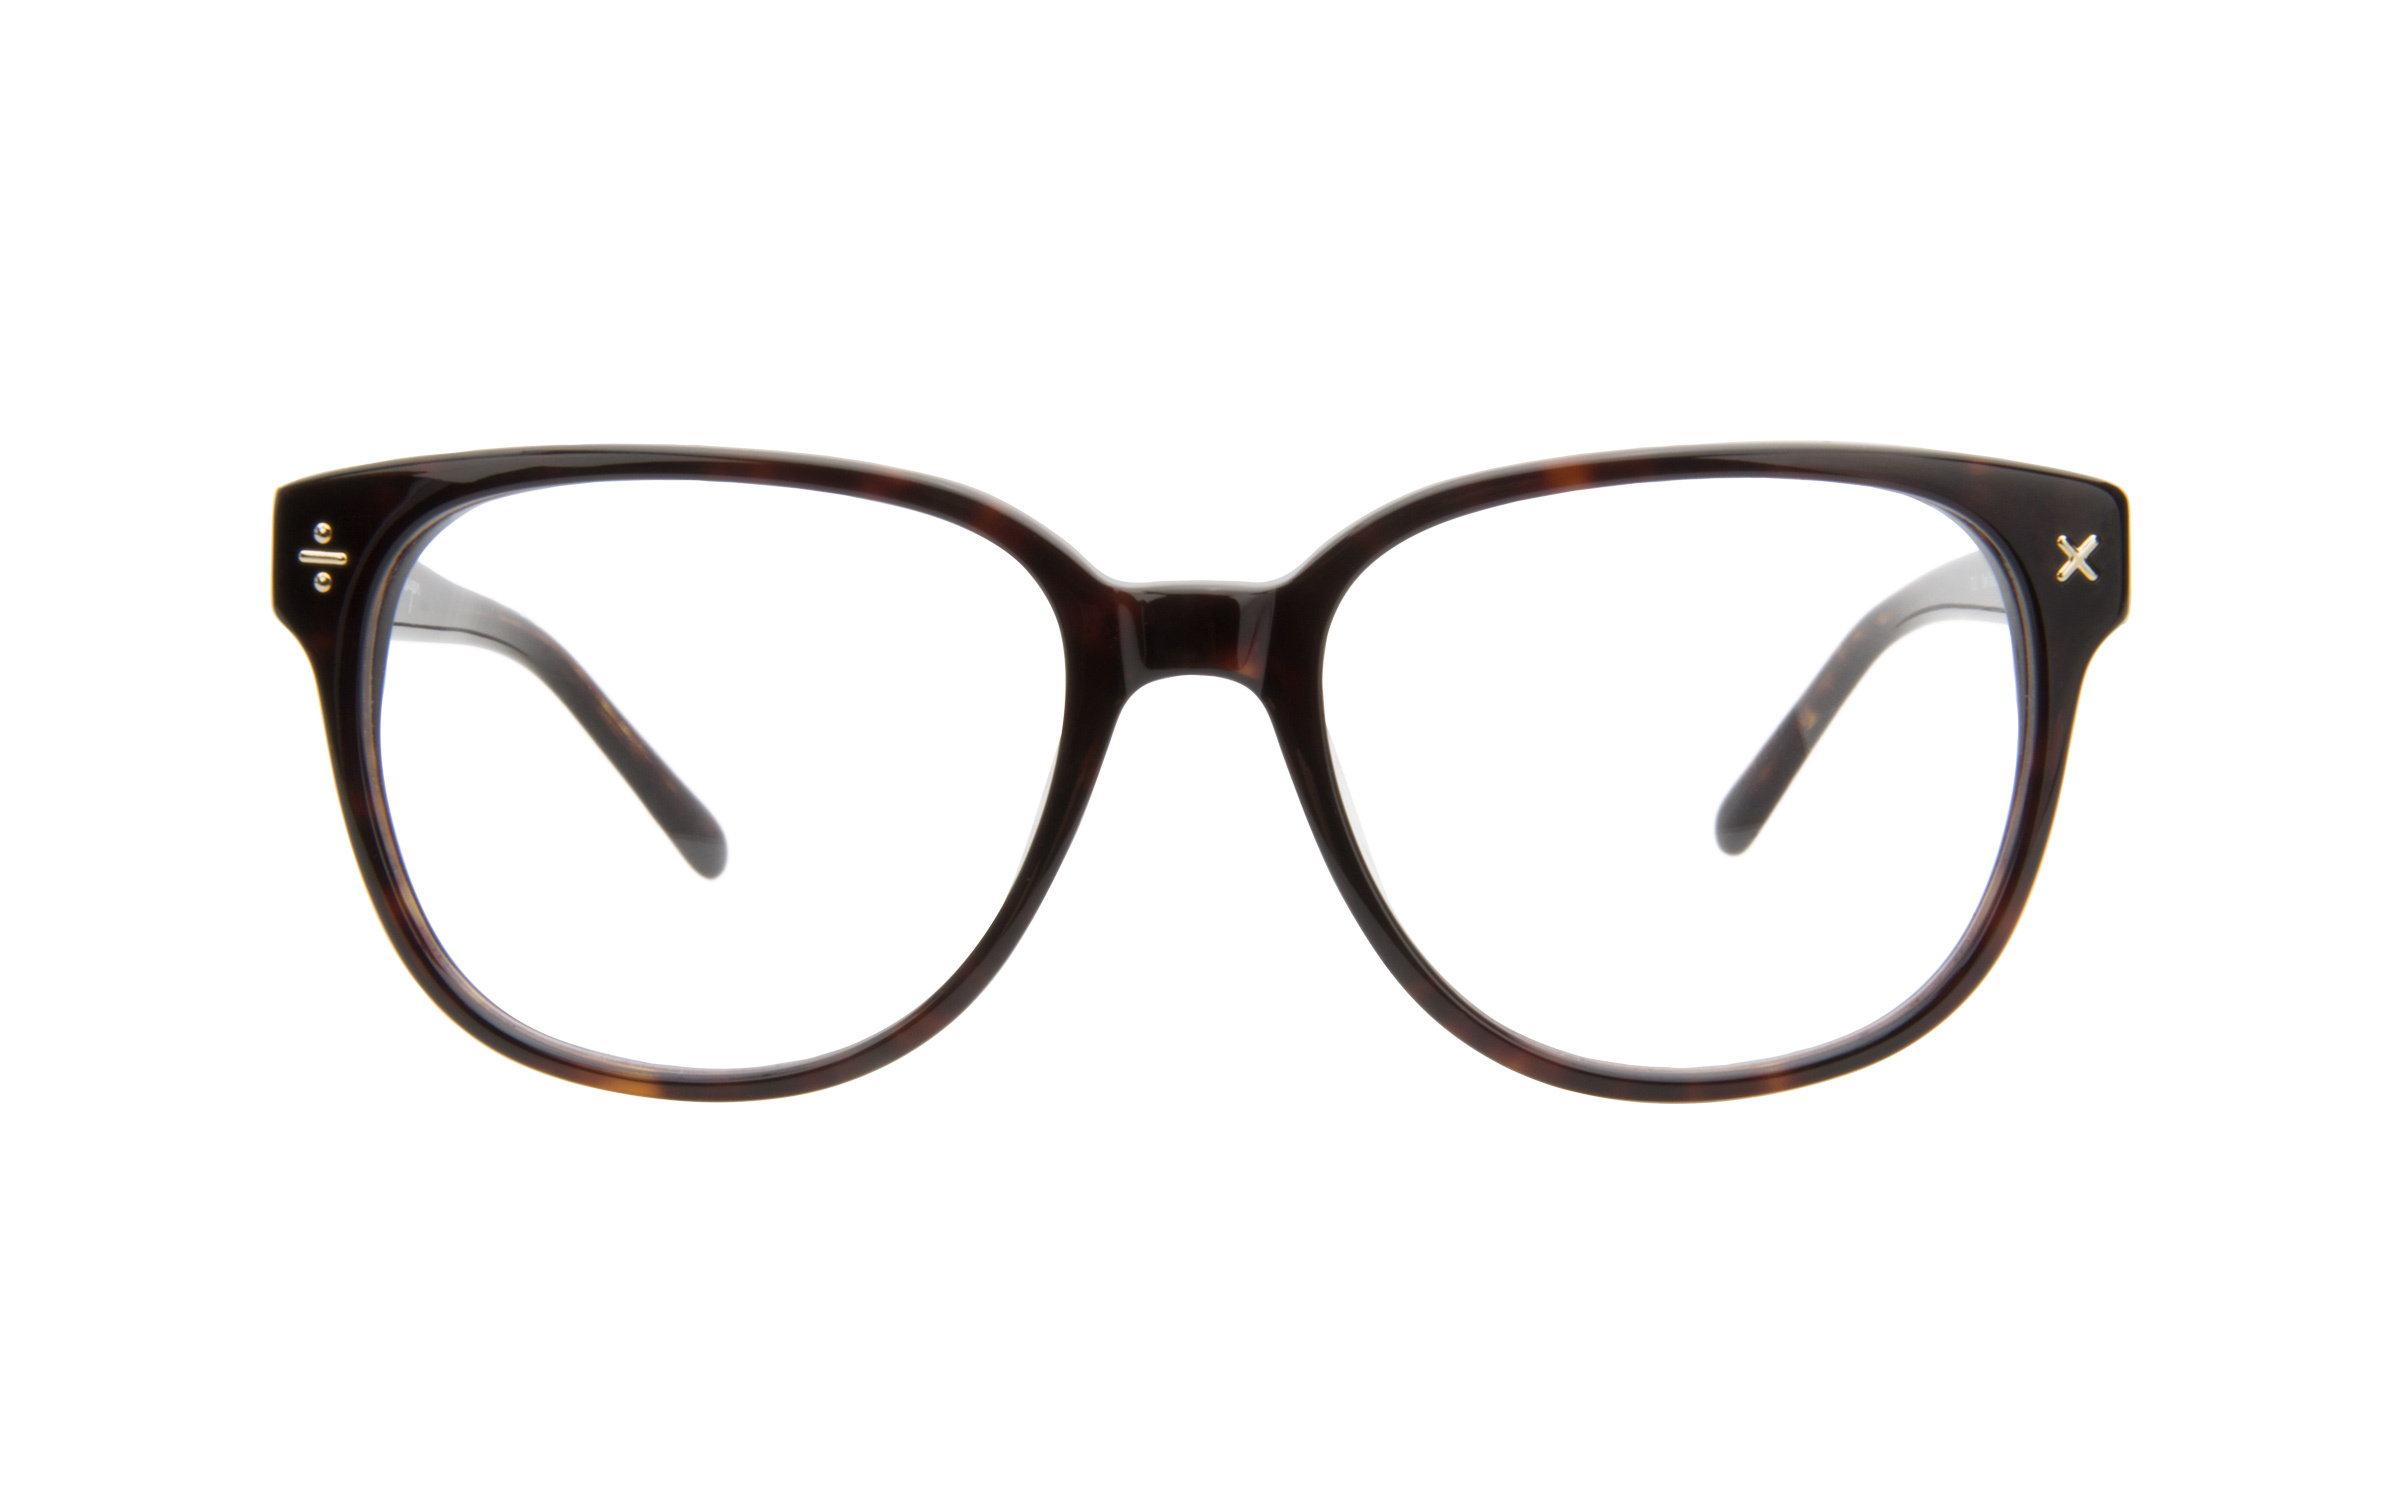 Gucci glasses - buy online in Canada with free shipping & returns ...